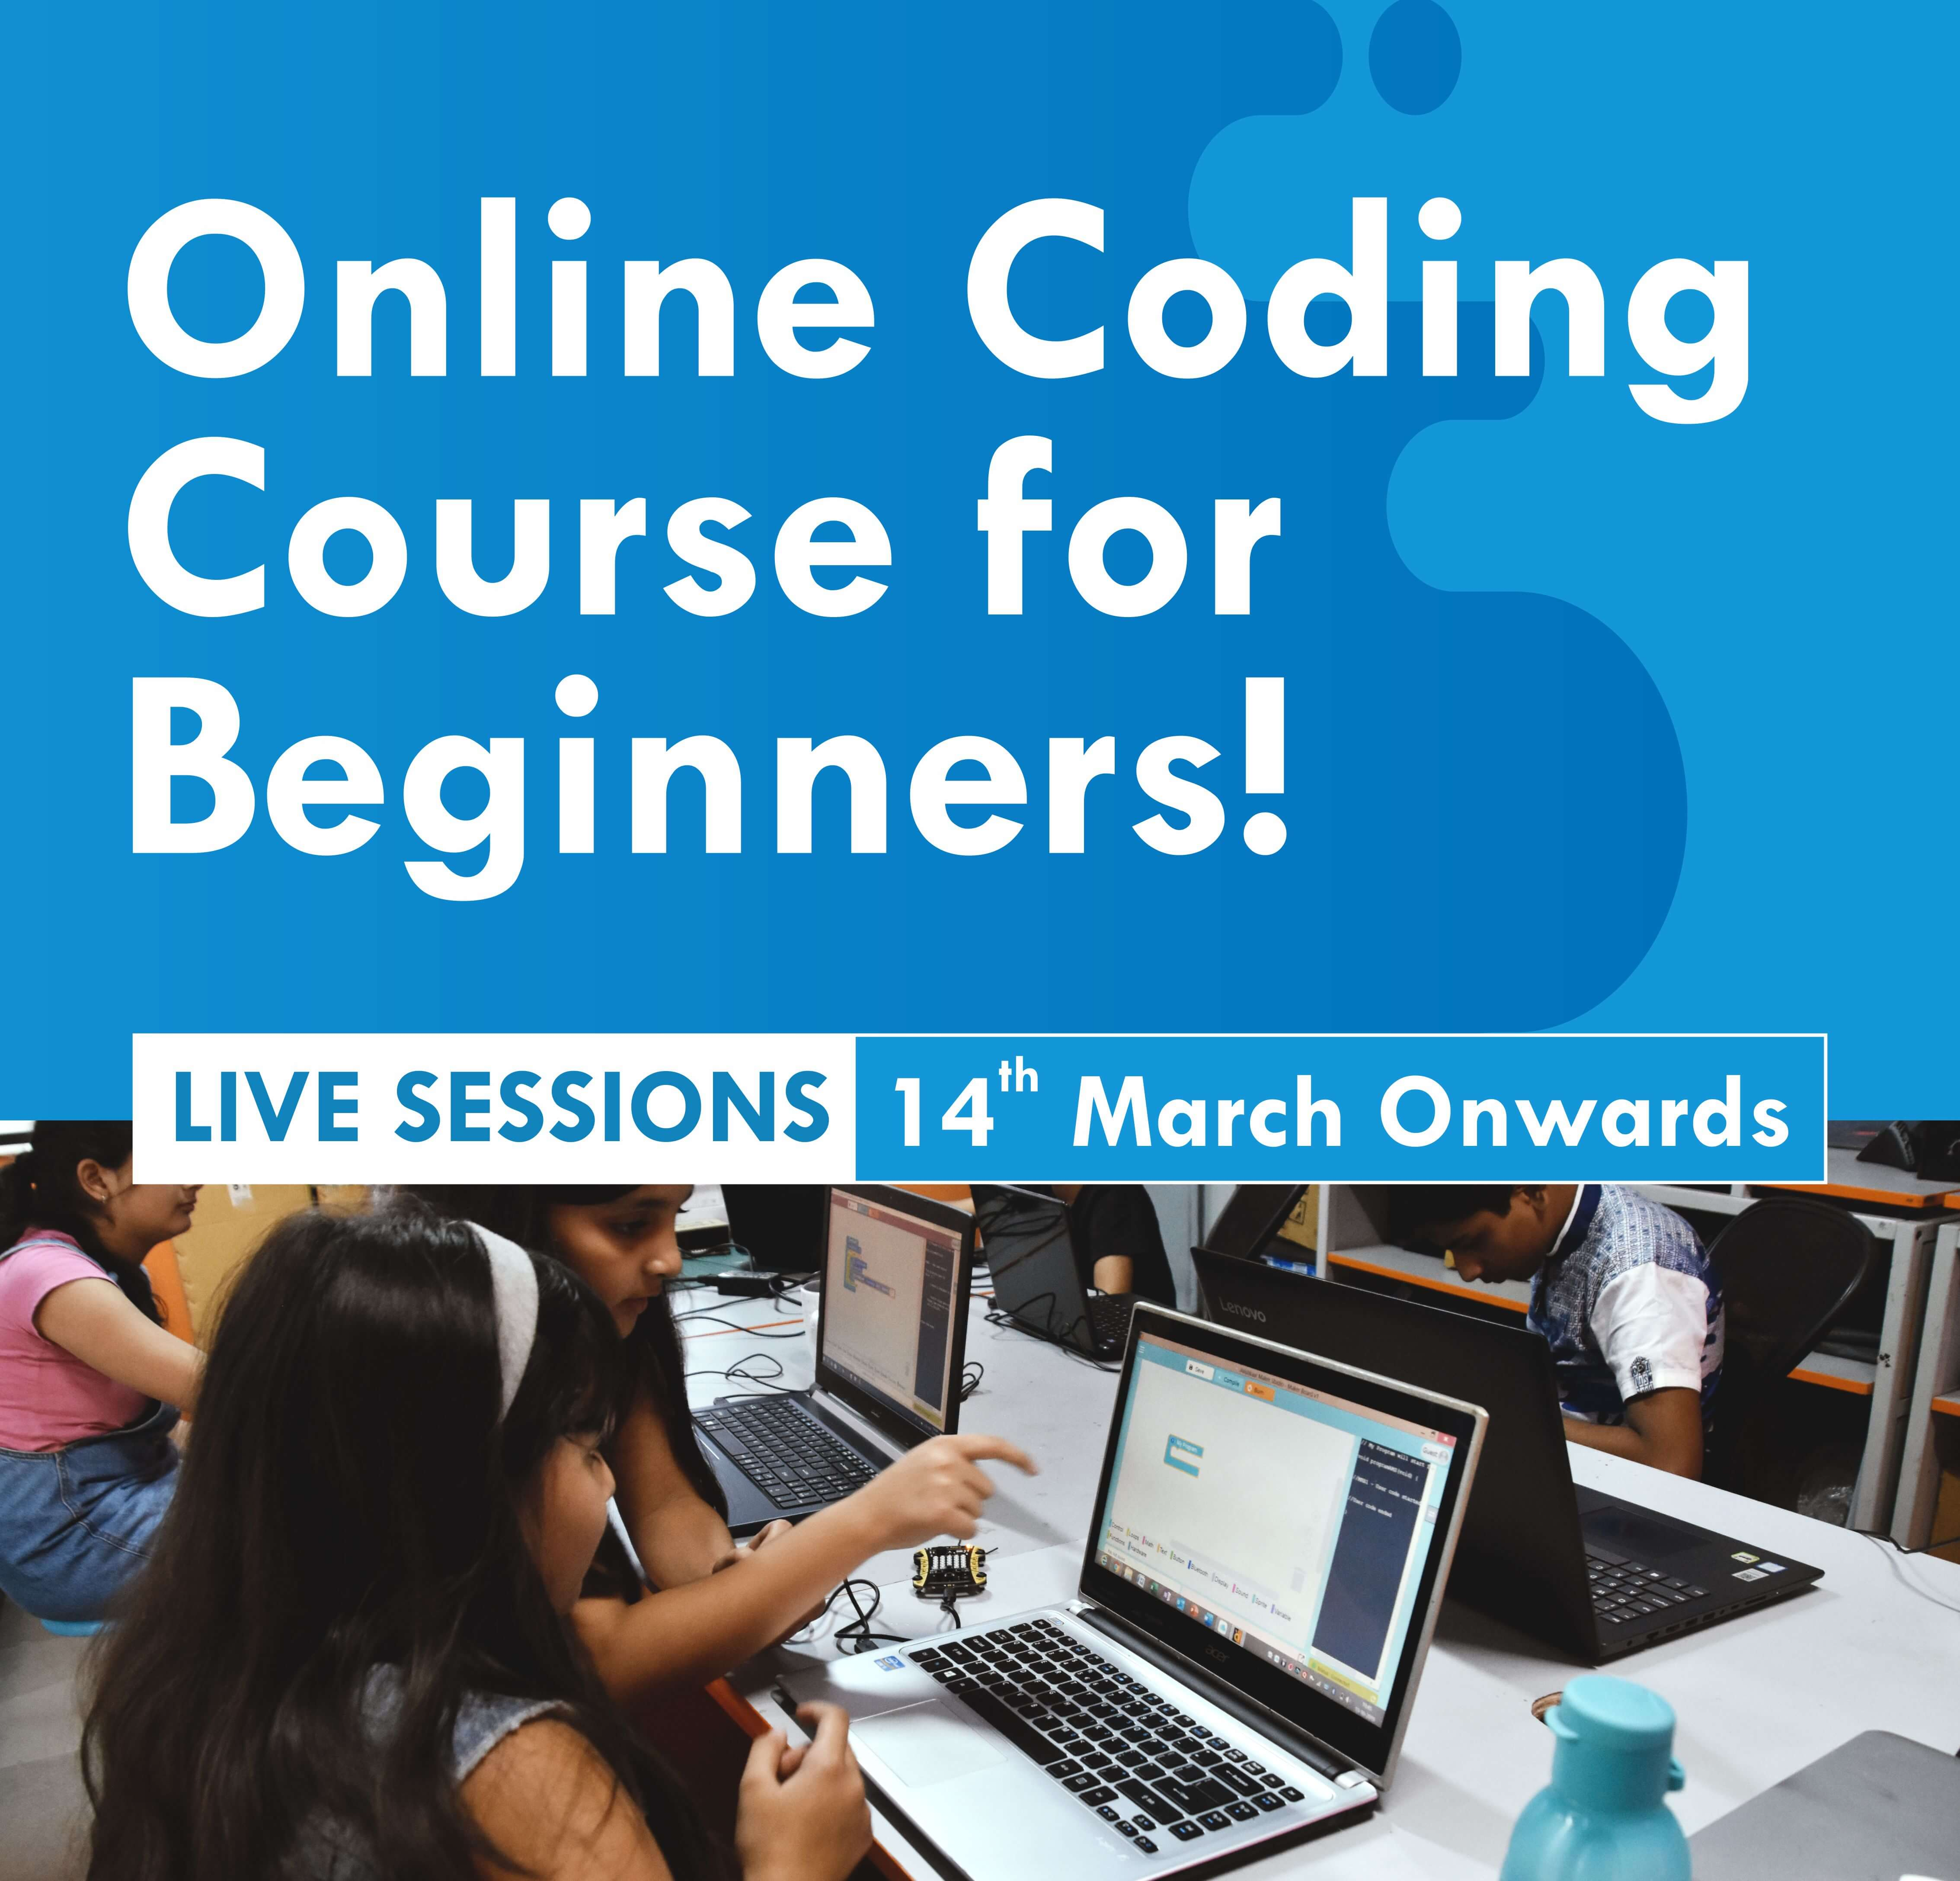 Online Coding Course for Beginners (Live Sessions) Thumbnail